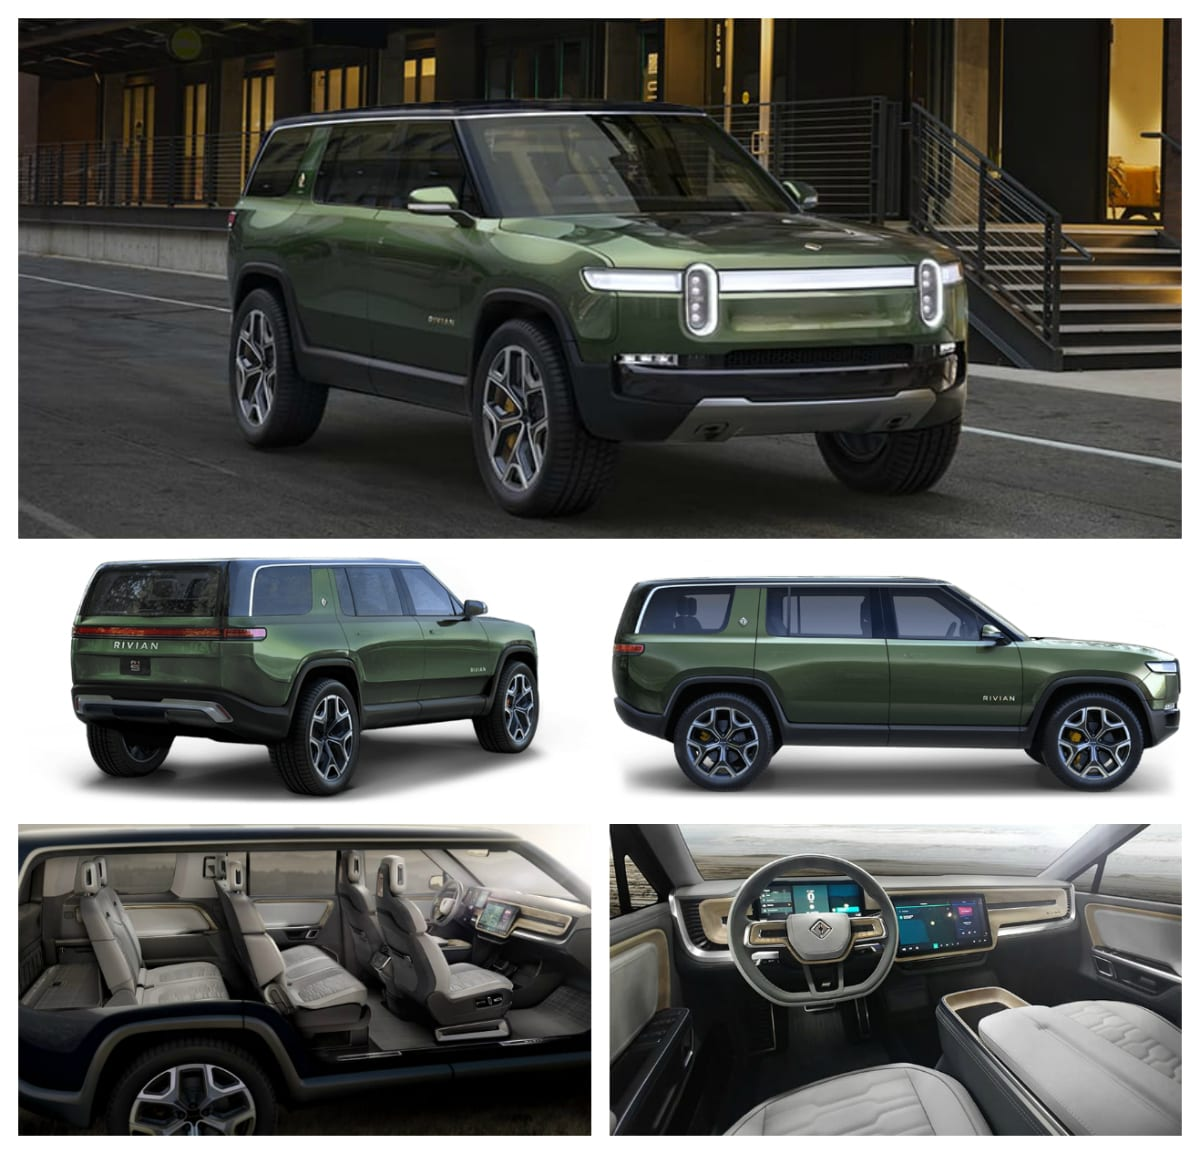 Rivian-R1S-SUV-pictures